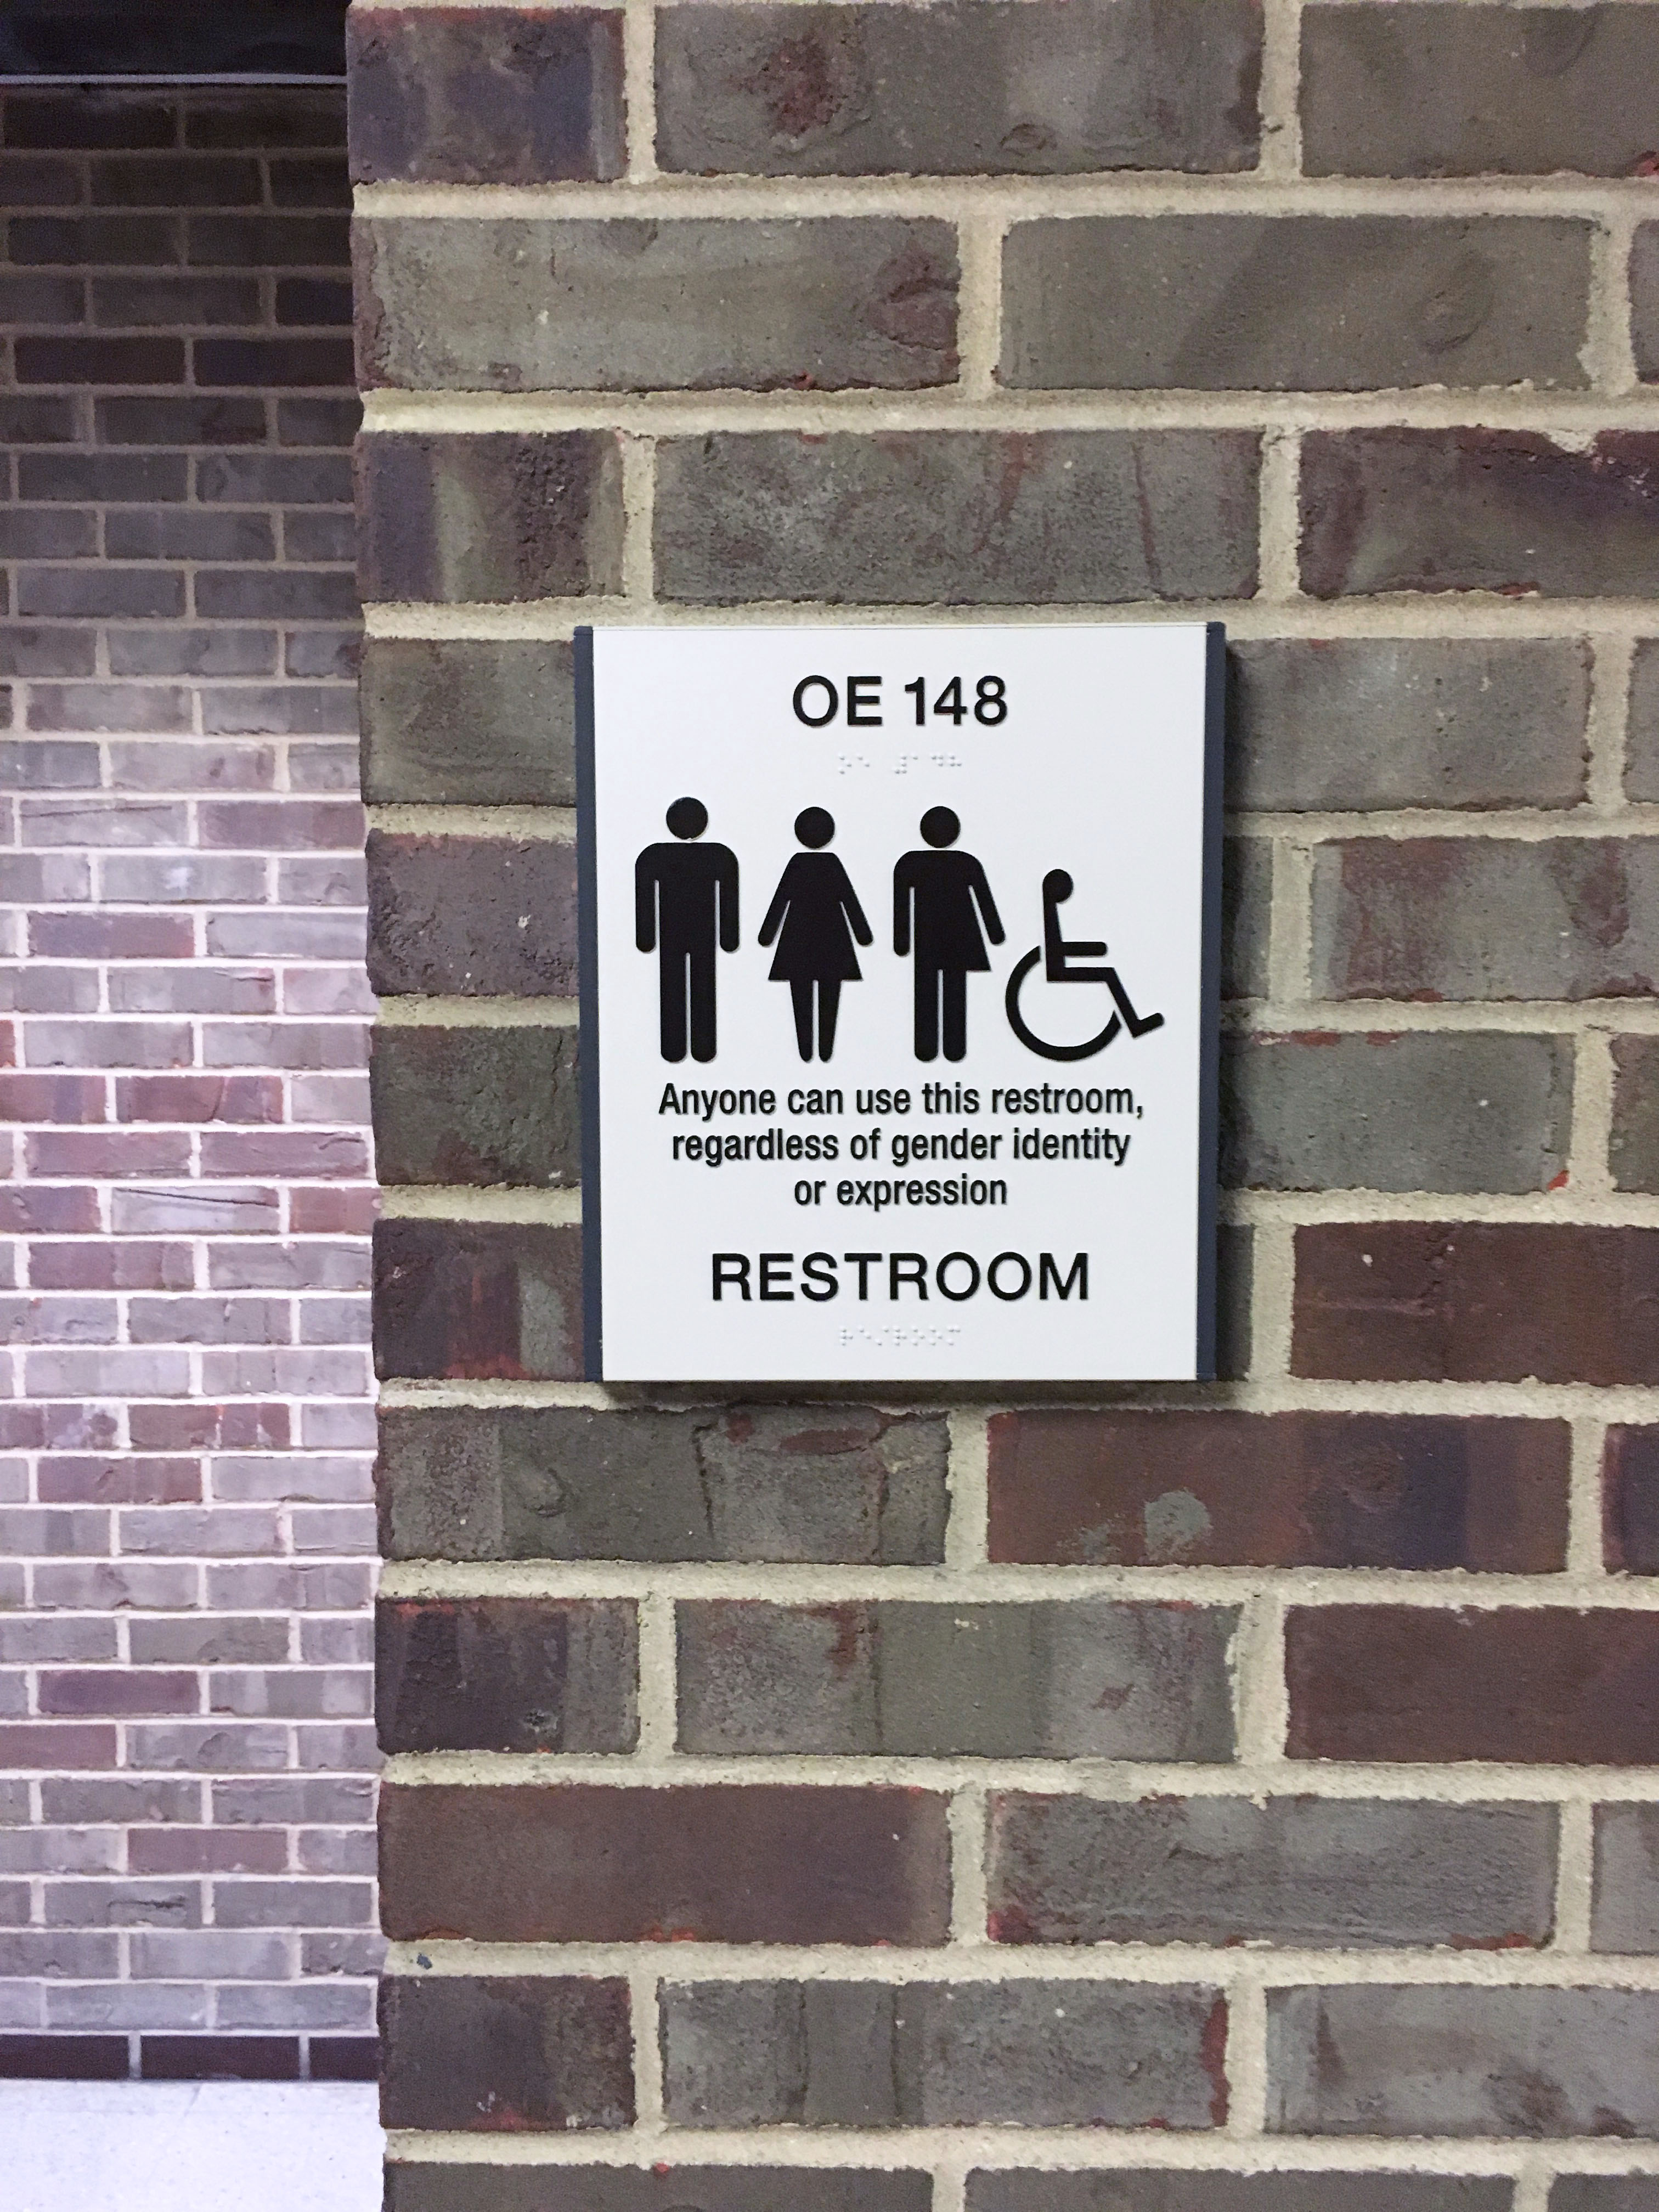 """A brick wall displays a sign that has four symbols: a stick figure in pants typically denoting the male gender, a stick figure in a dress typically denoting the female gender, a stick figure that is wearing pants on one side and a dress on the other, and the stick figure denoting accessibility. The text on the sign notes it is a restroom and, """"anyone can use this restroom, regardless of gender identity or expression""""."""